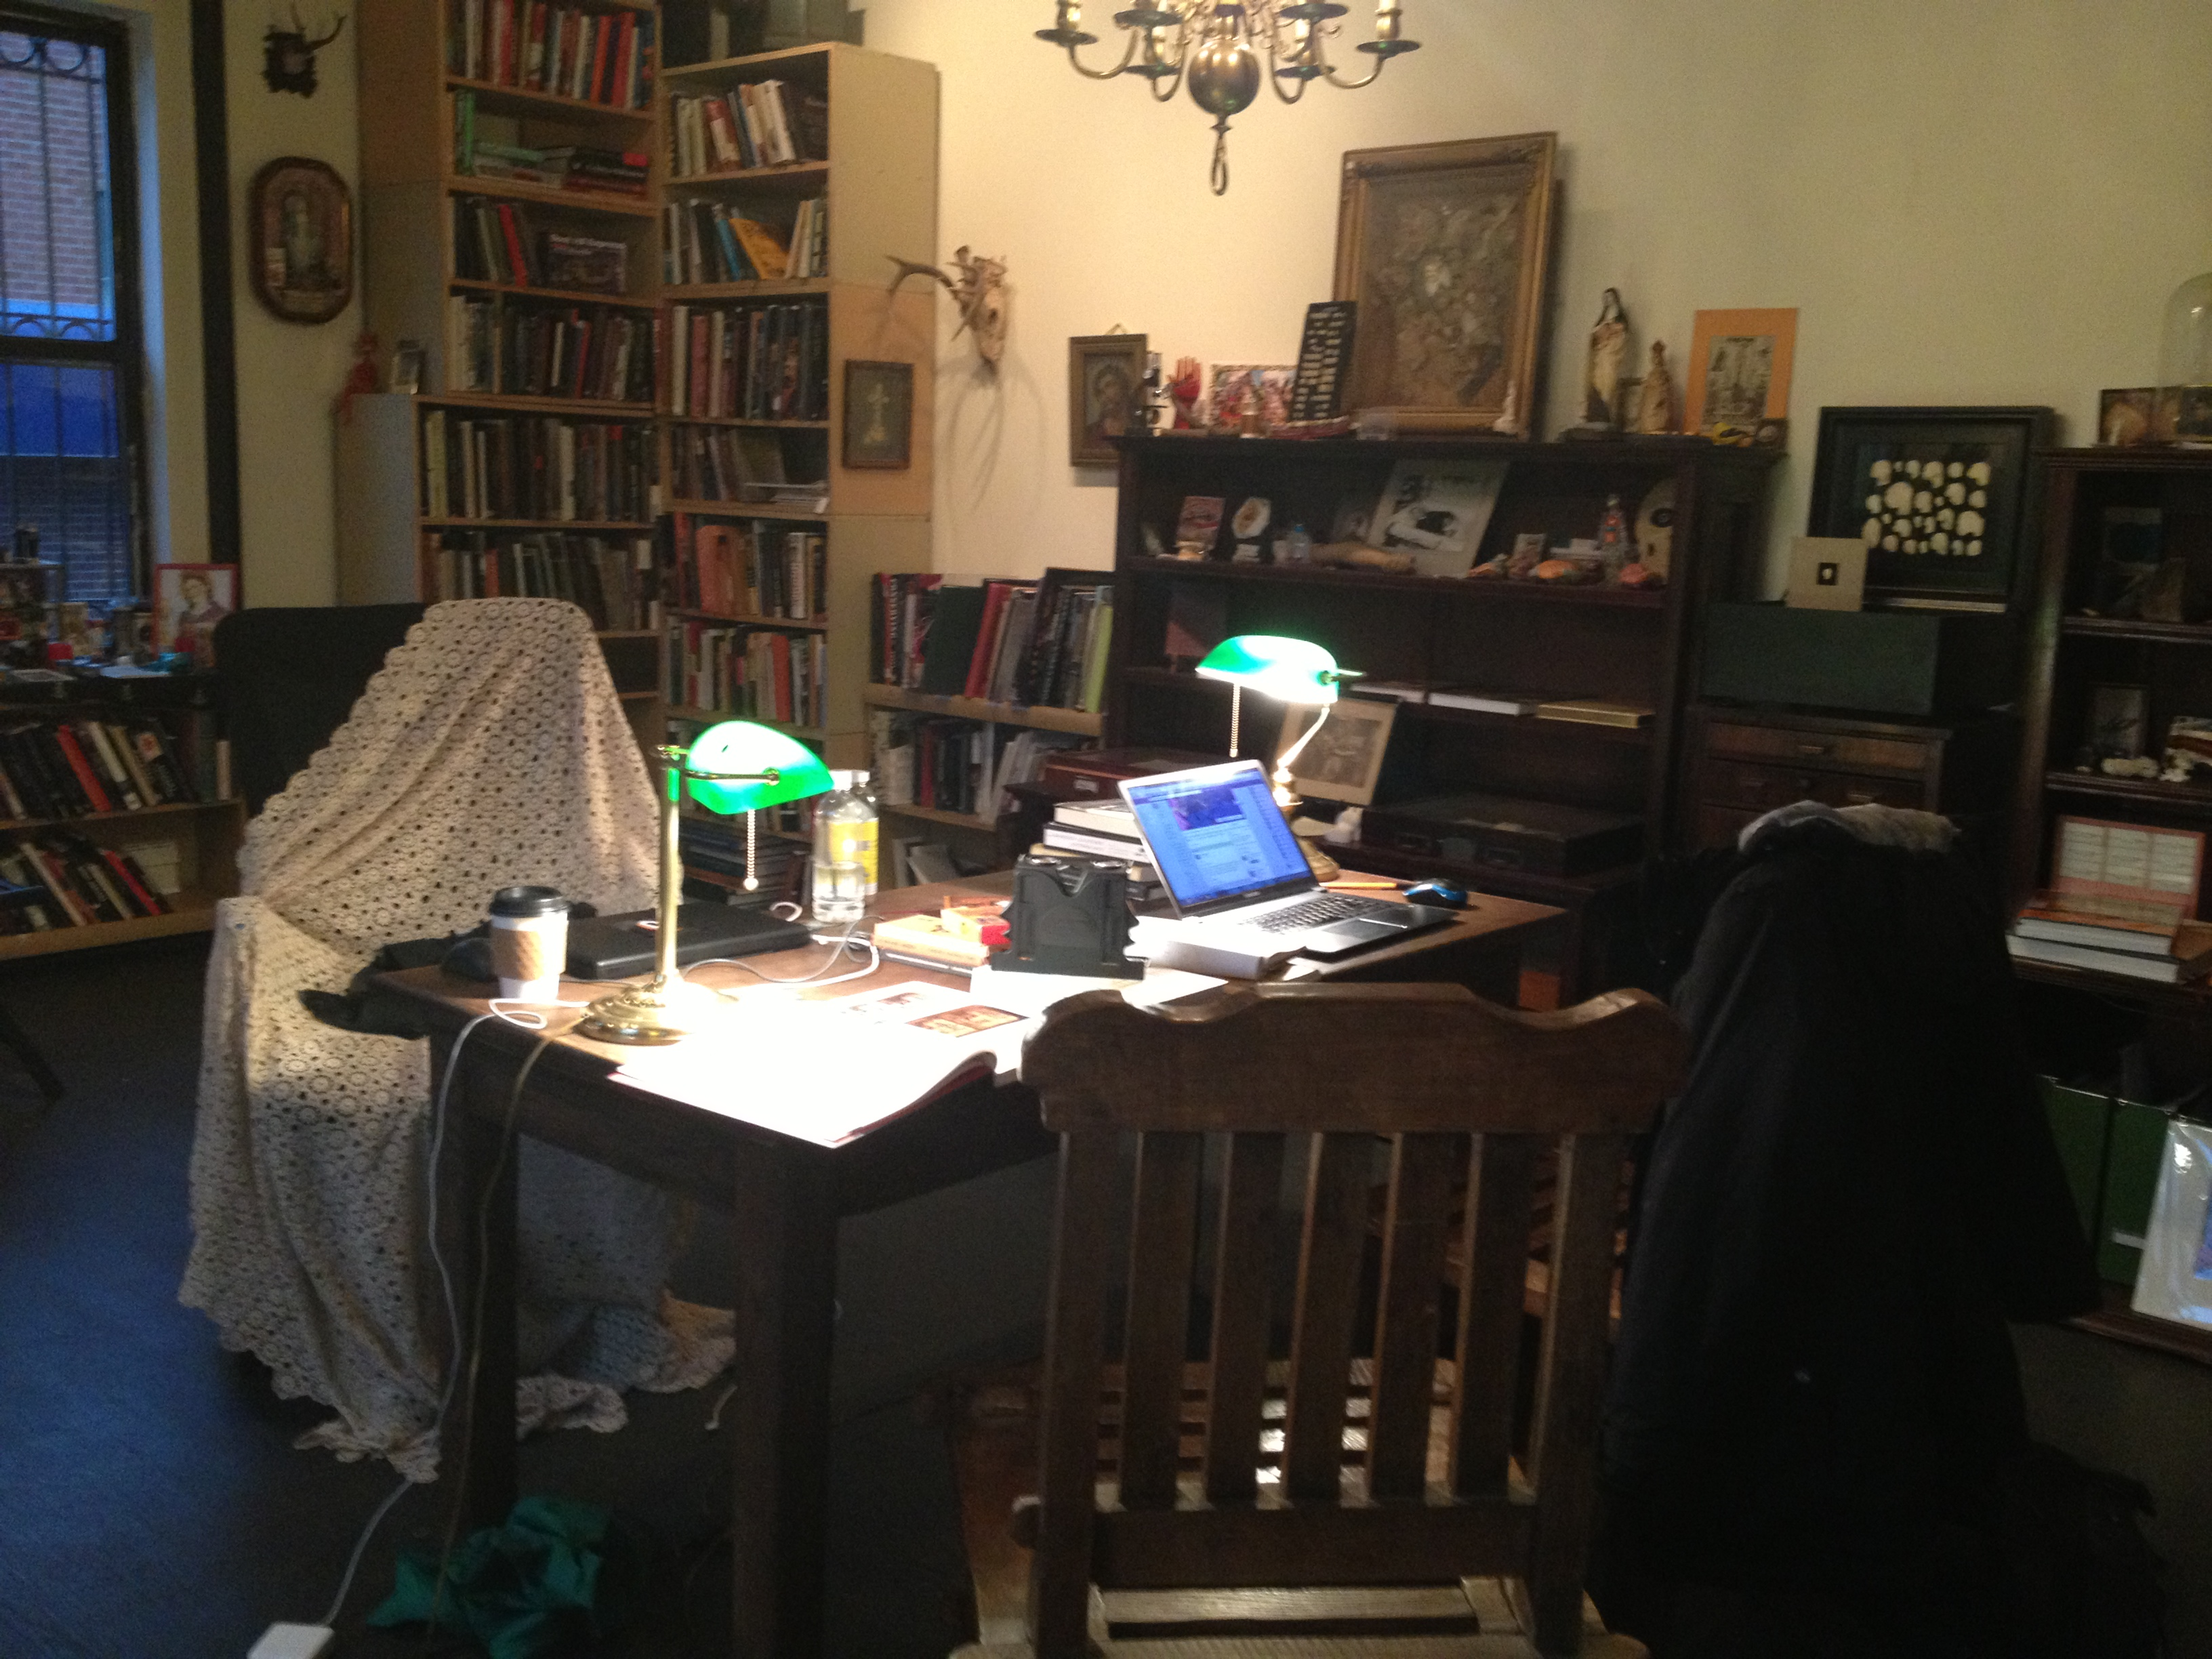 The author's desk at the Morbid Anatomy Museum.